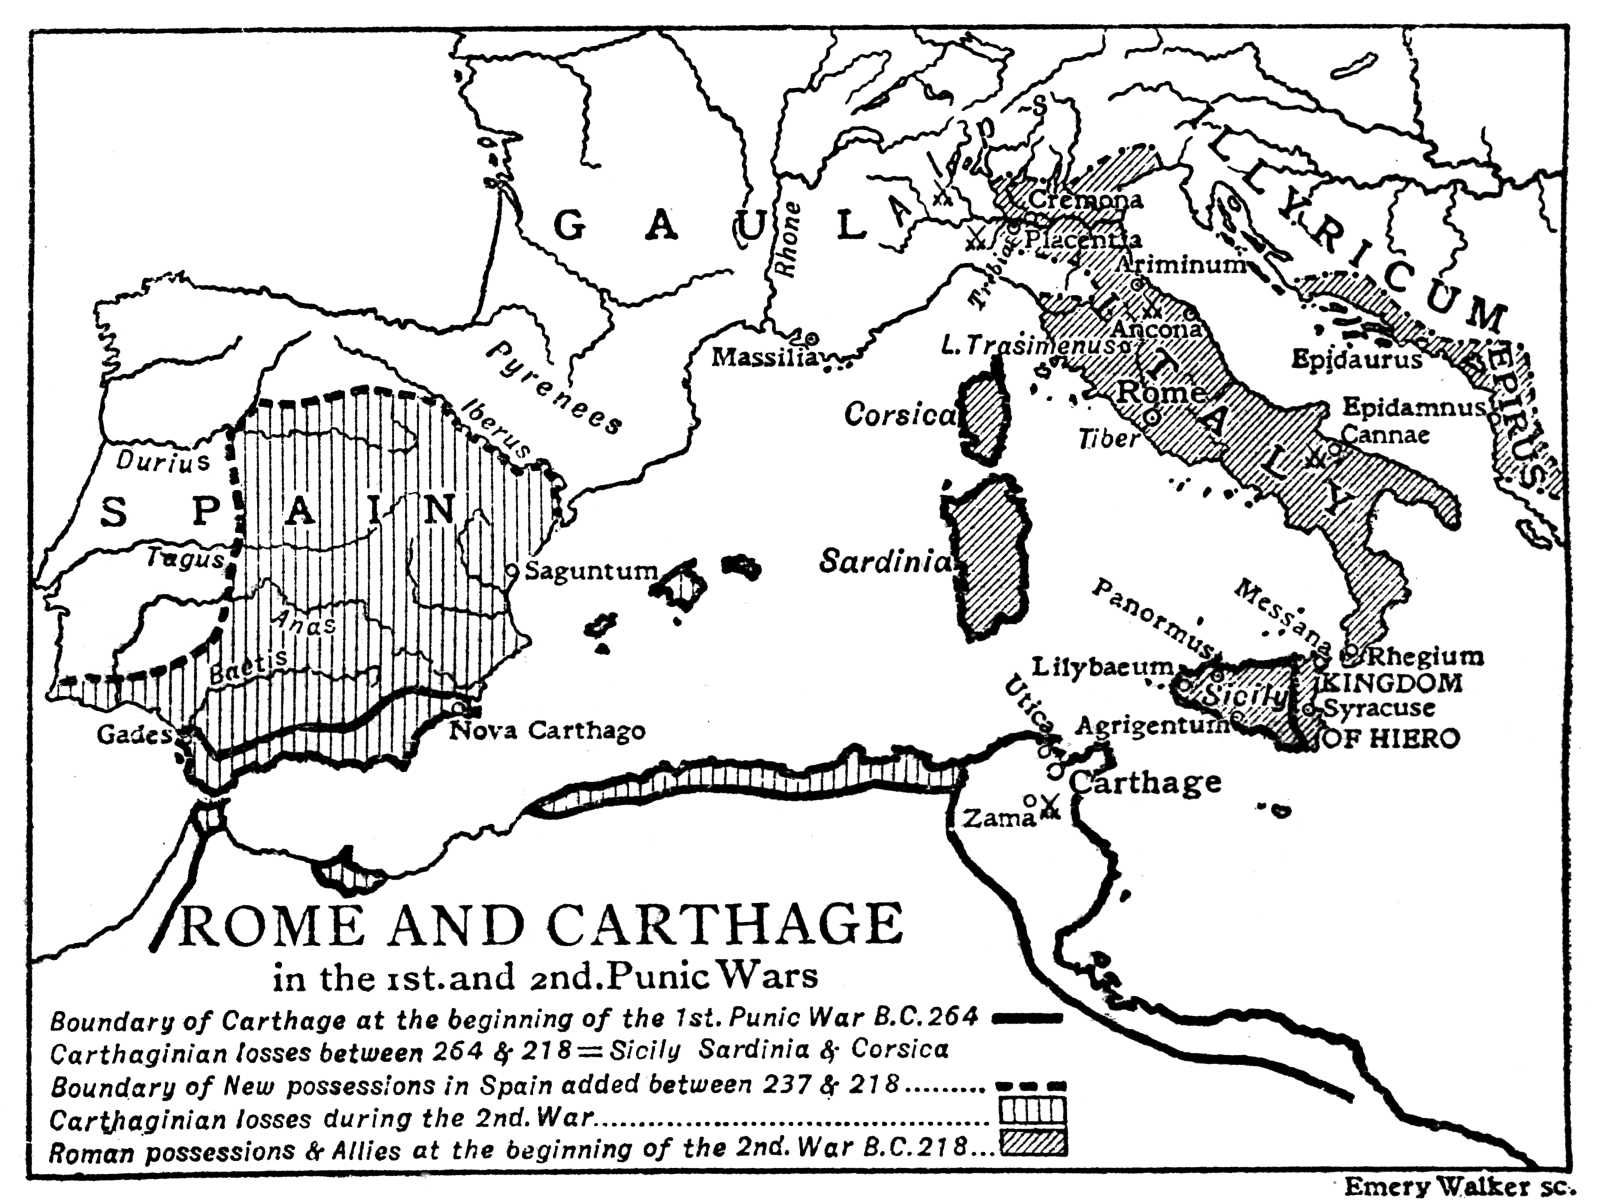 #Week5 Map of Rome and Carthage in the 1st and 2nd Punic